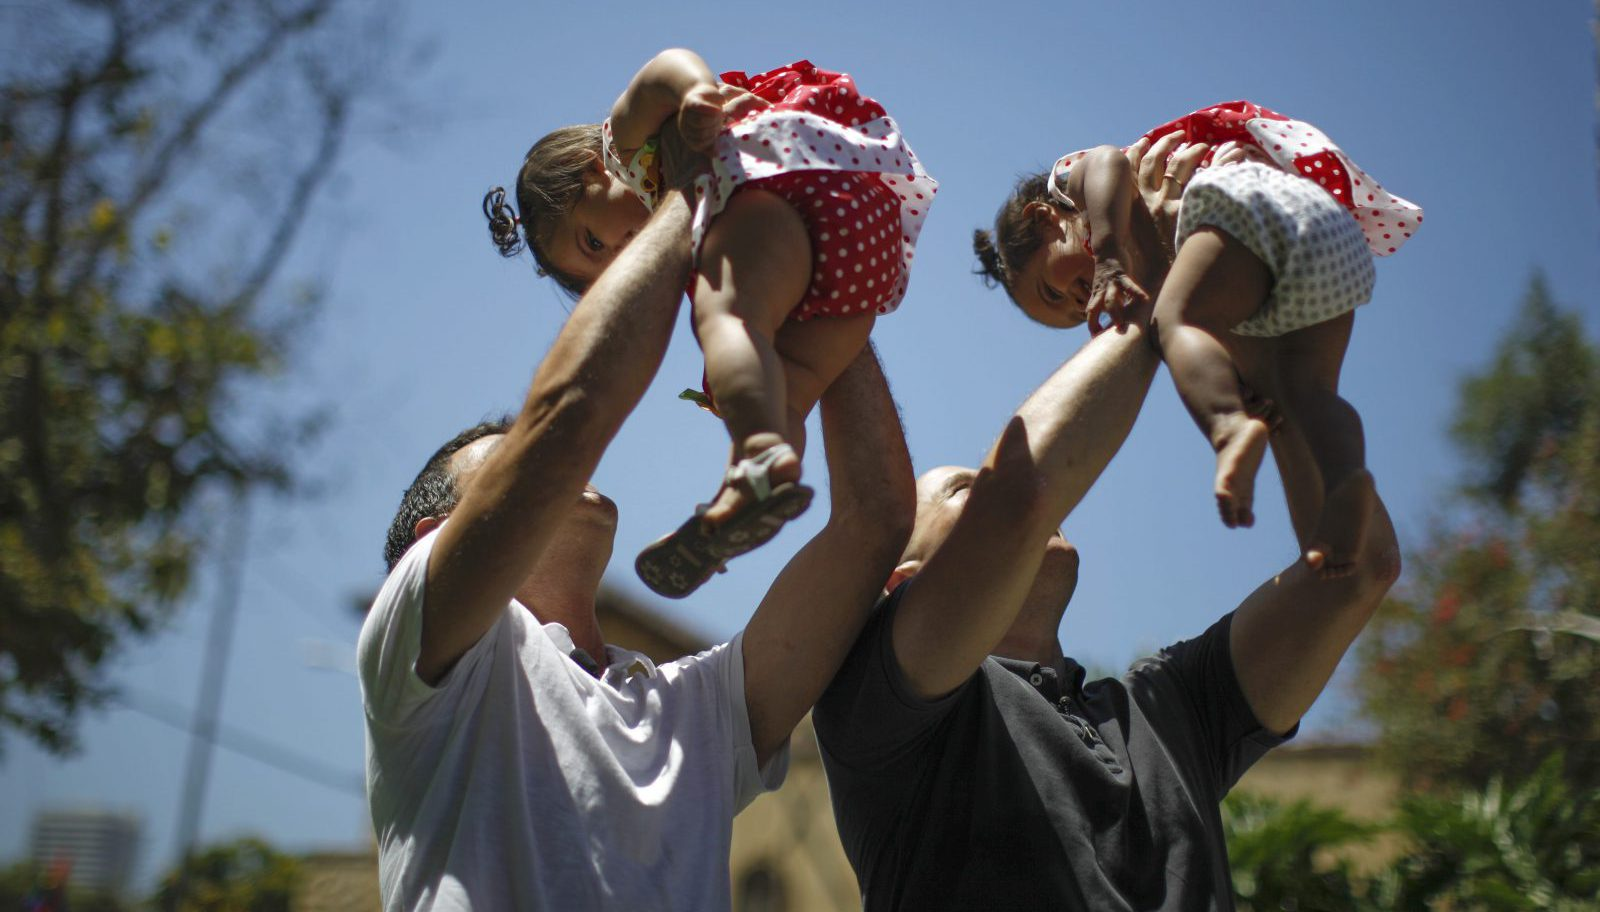 Jason Howe, 48, and Adrian Perez (L), 48, who were married in Spain, and again in California, hold their one-year-old twin daughters Clara (R) and Olivia at a playground in West Hollywood, California.